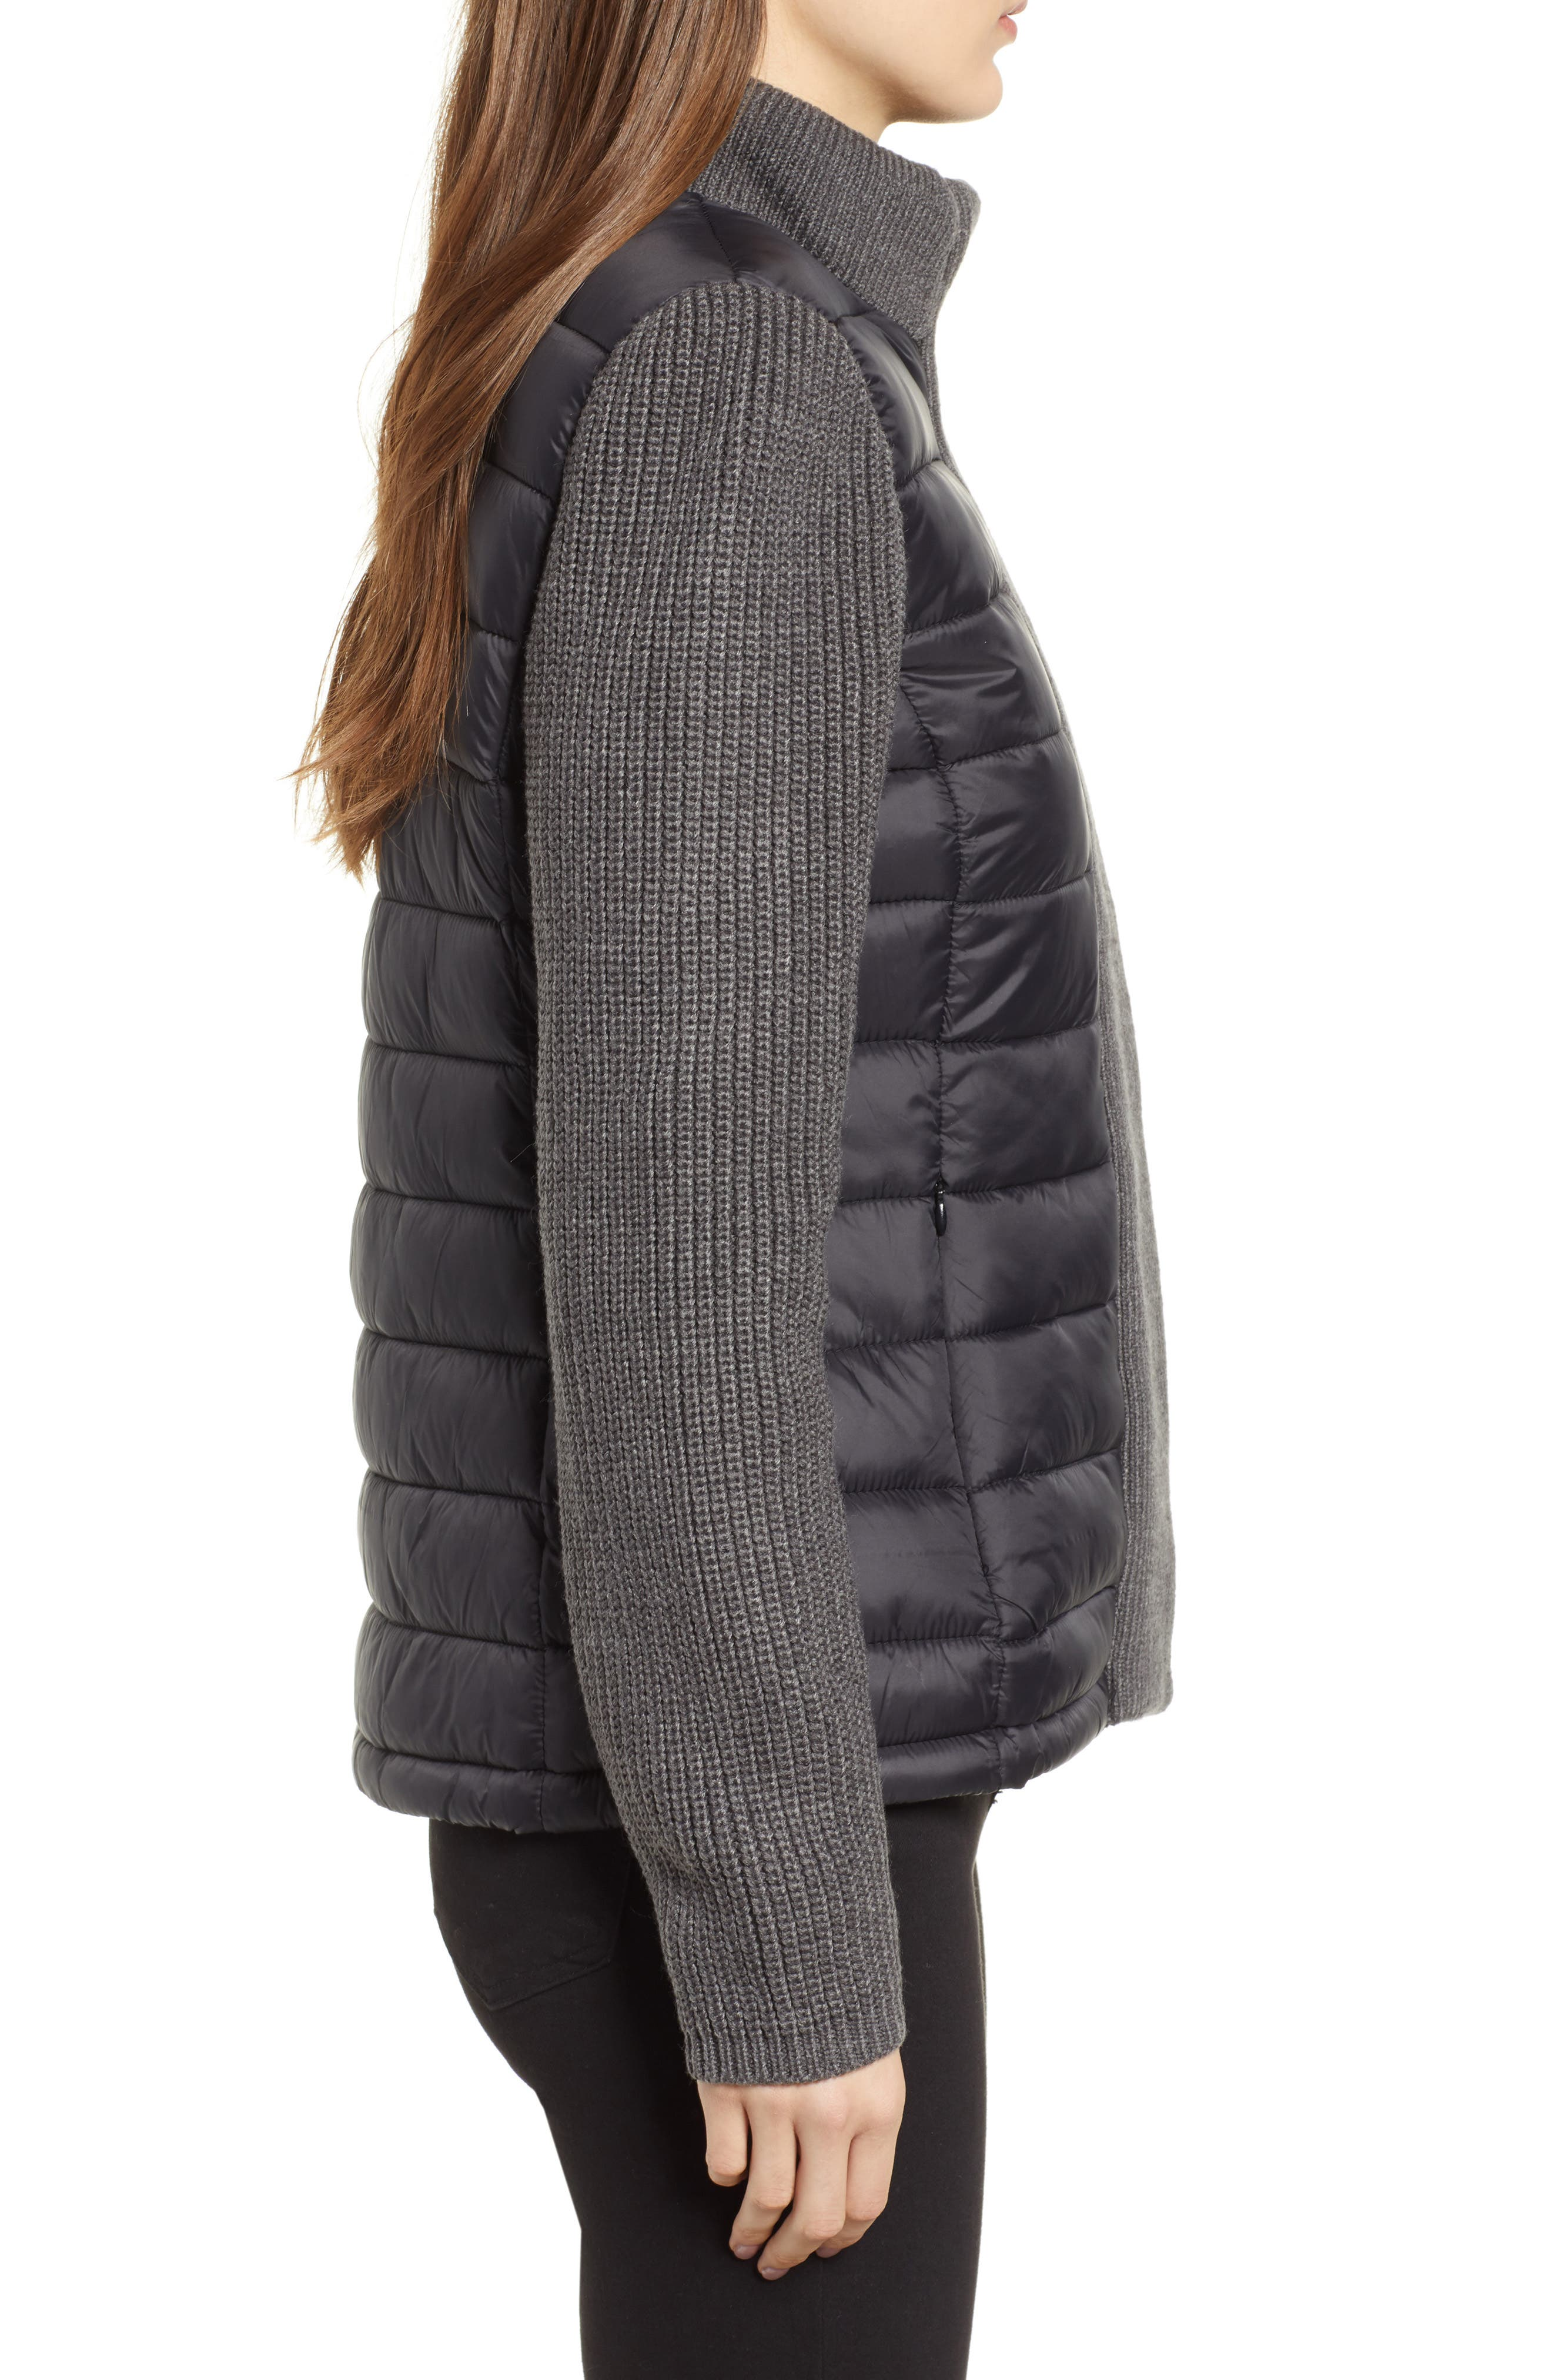 MARC NEW YORK, Mark New York Packable Knit Trim Puffer Jacket, Alternate thumbnail 3, color, BLACK/ GREY